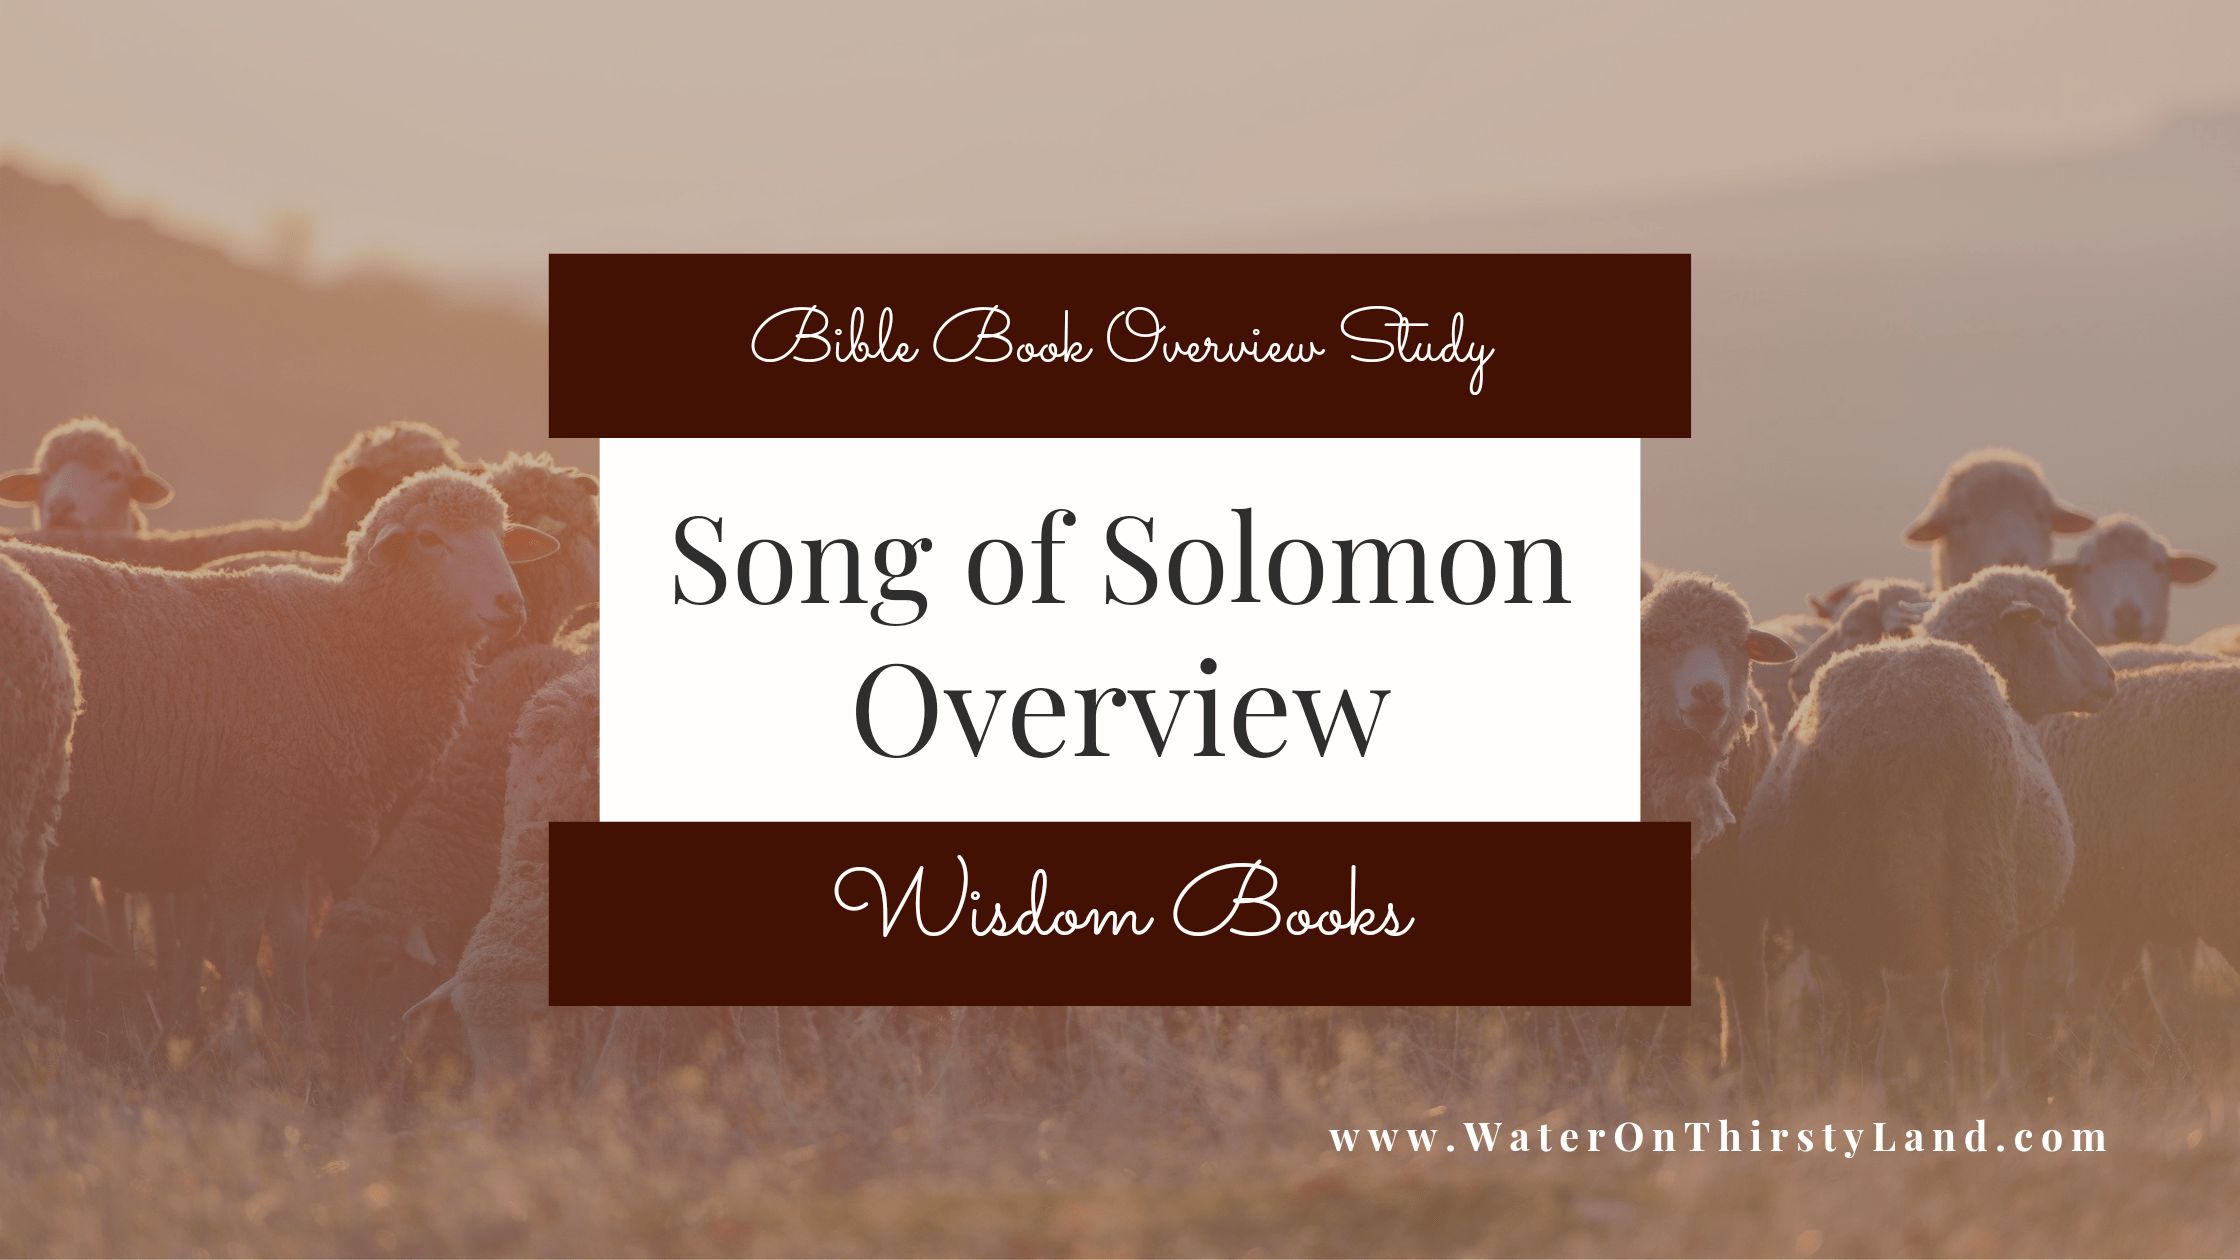 Song of Solomon Overview